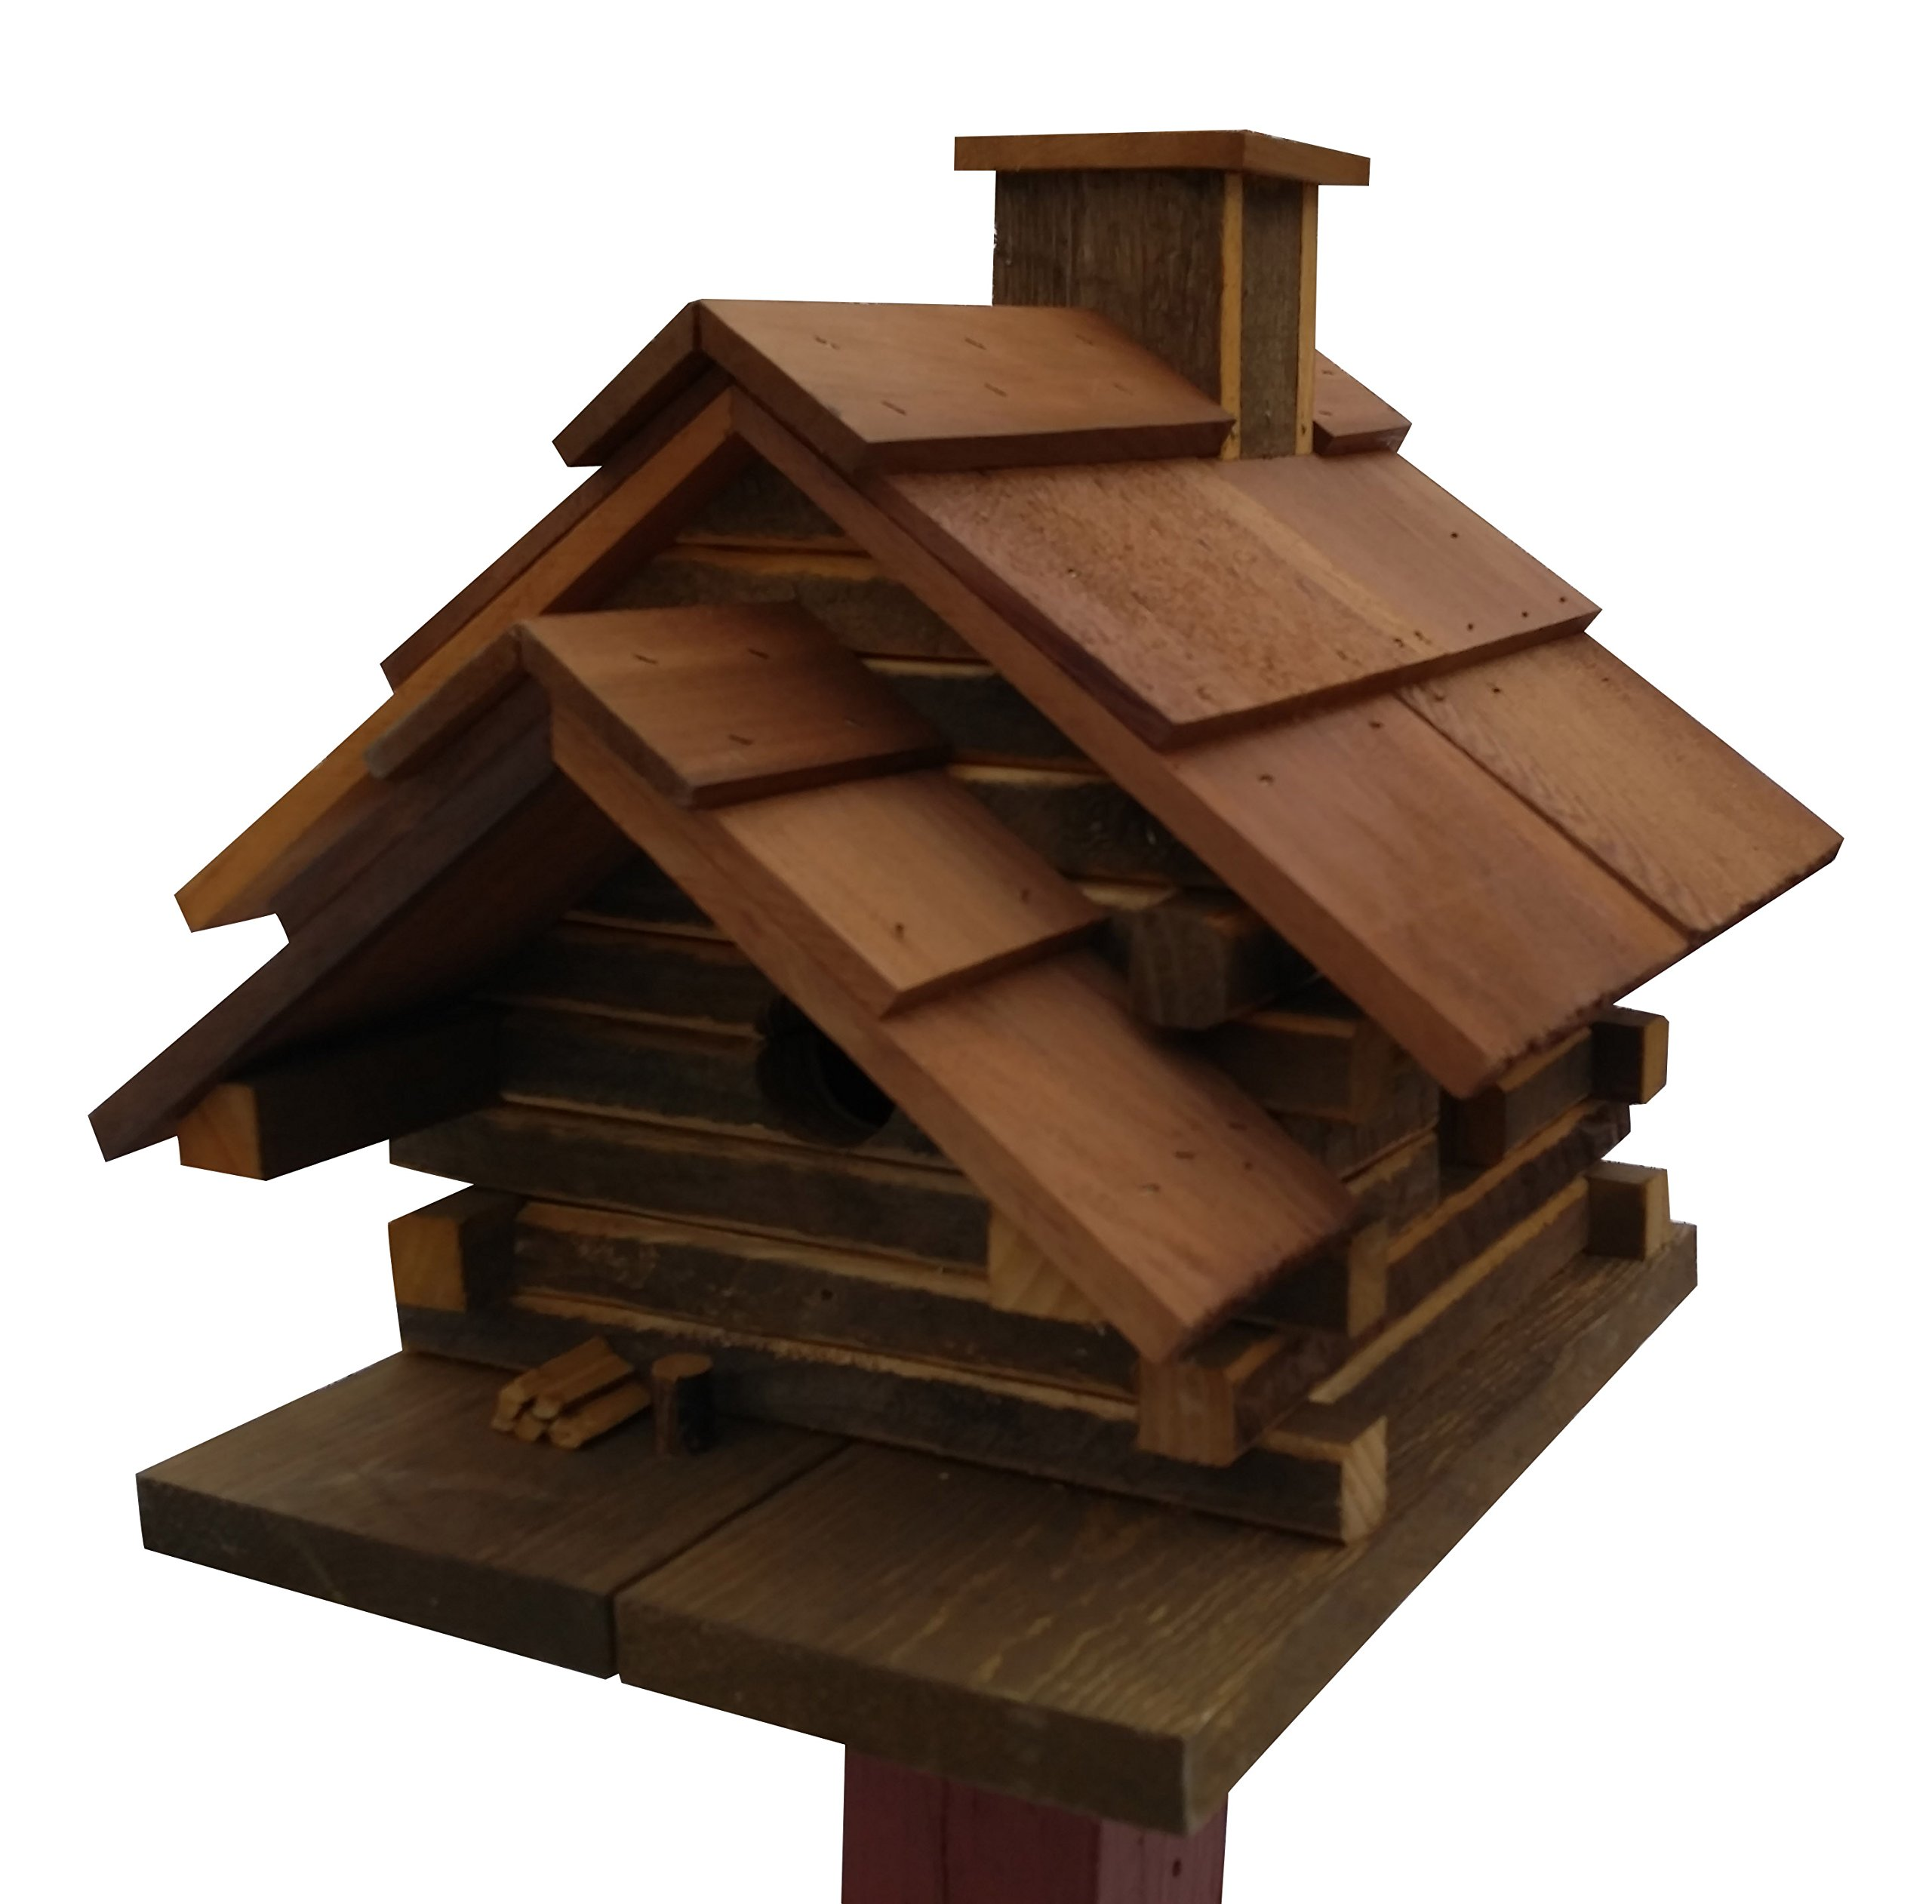 Home Bazaar Conestoga Log Cabin Birdhouse. Medium, Natural Cedar